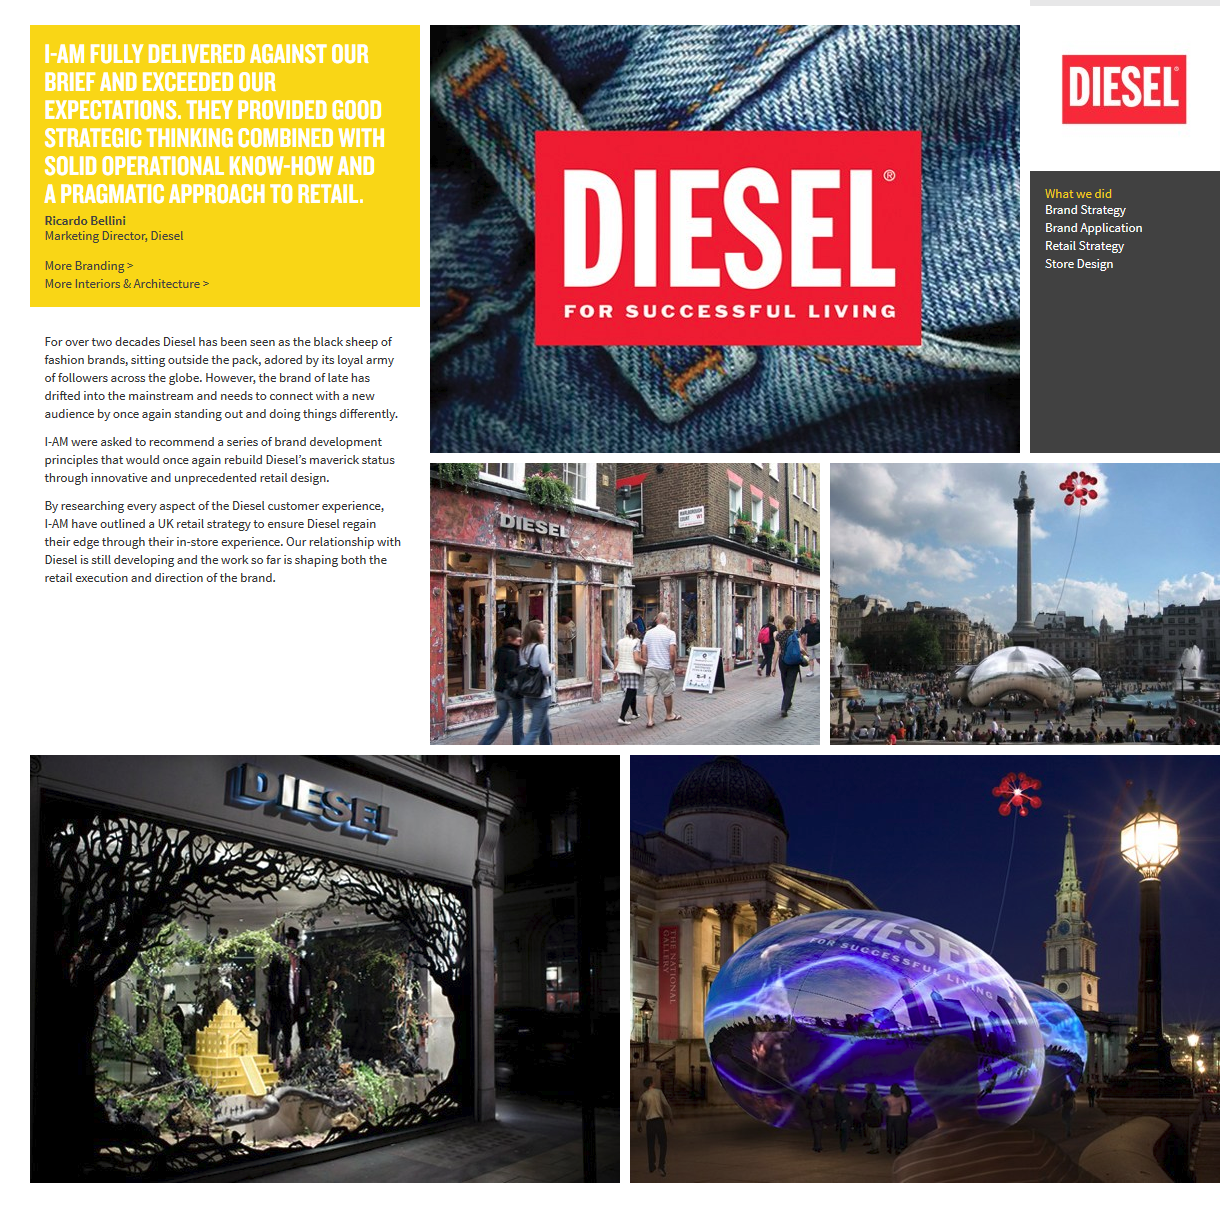 Diesel - Brand Strategy & Application and Brand Positioning